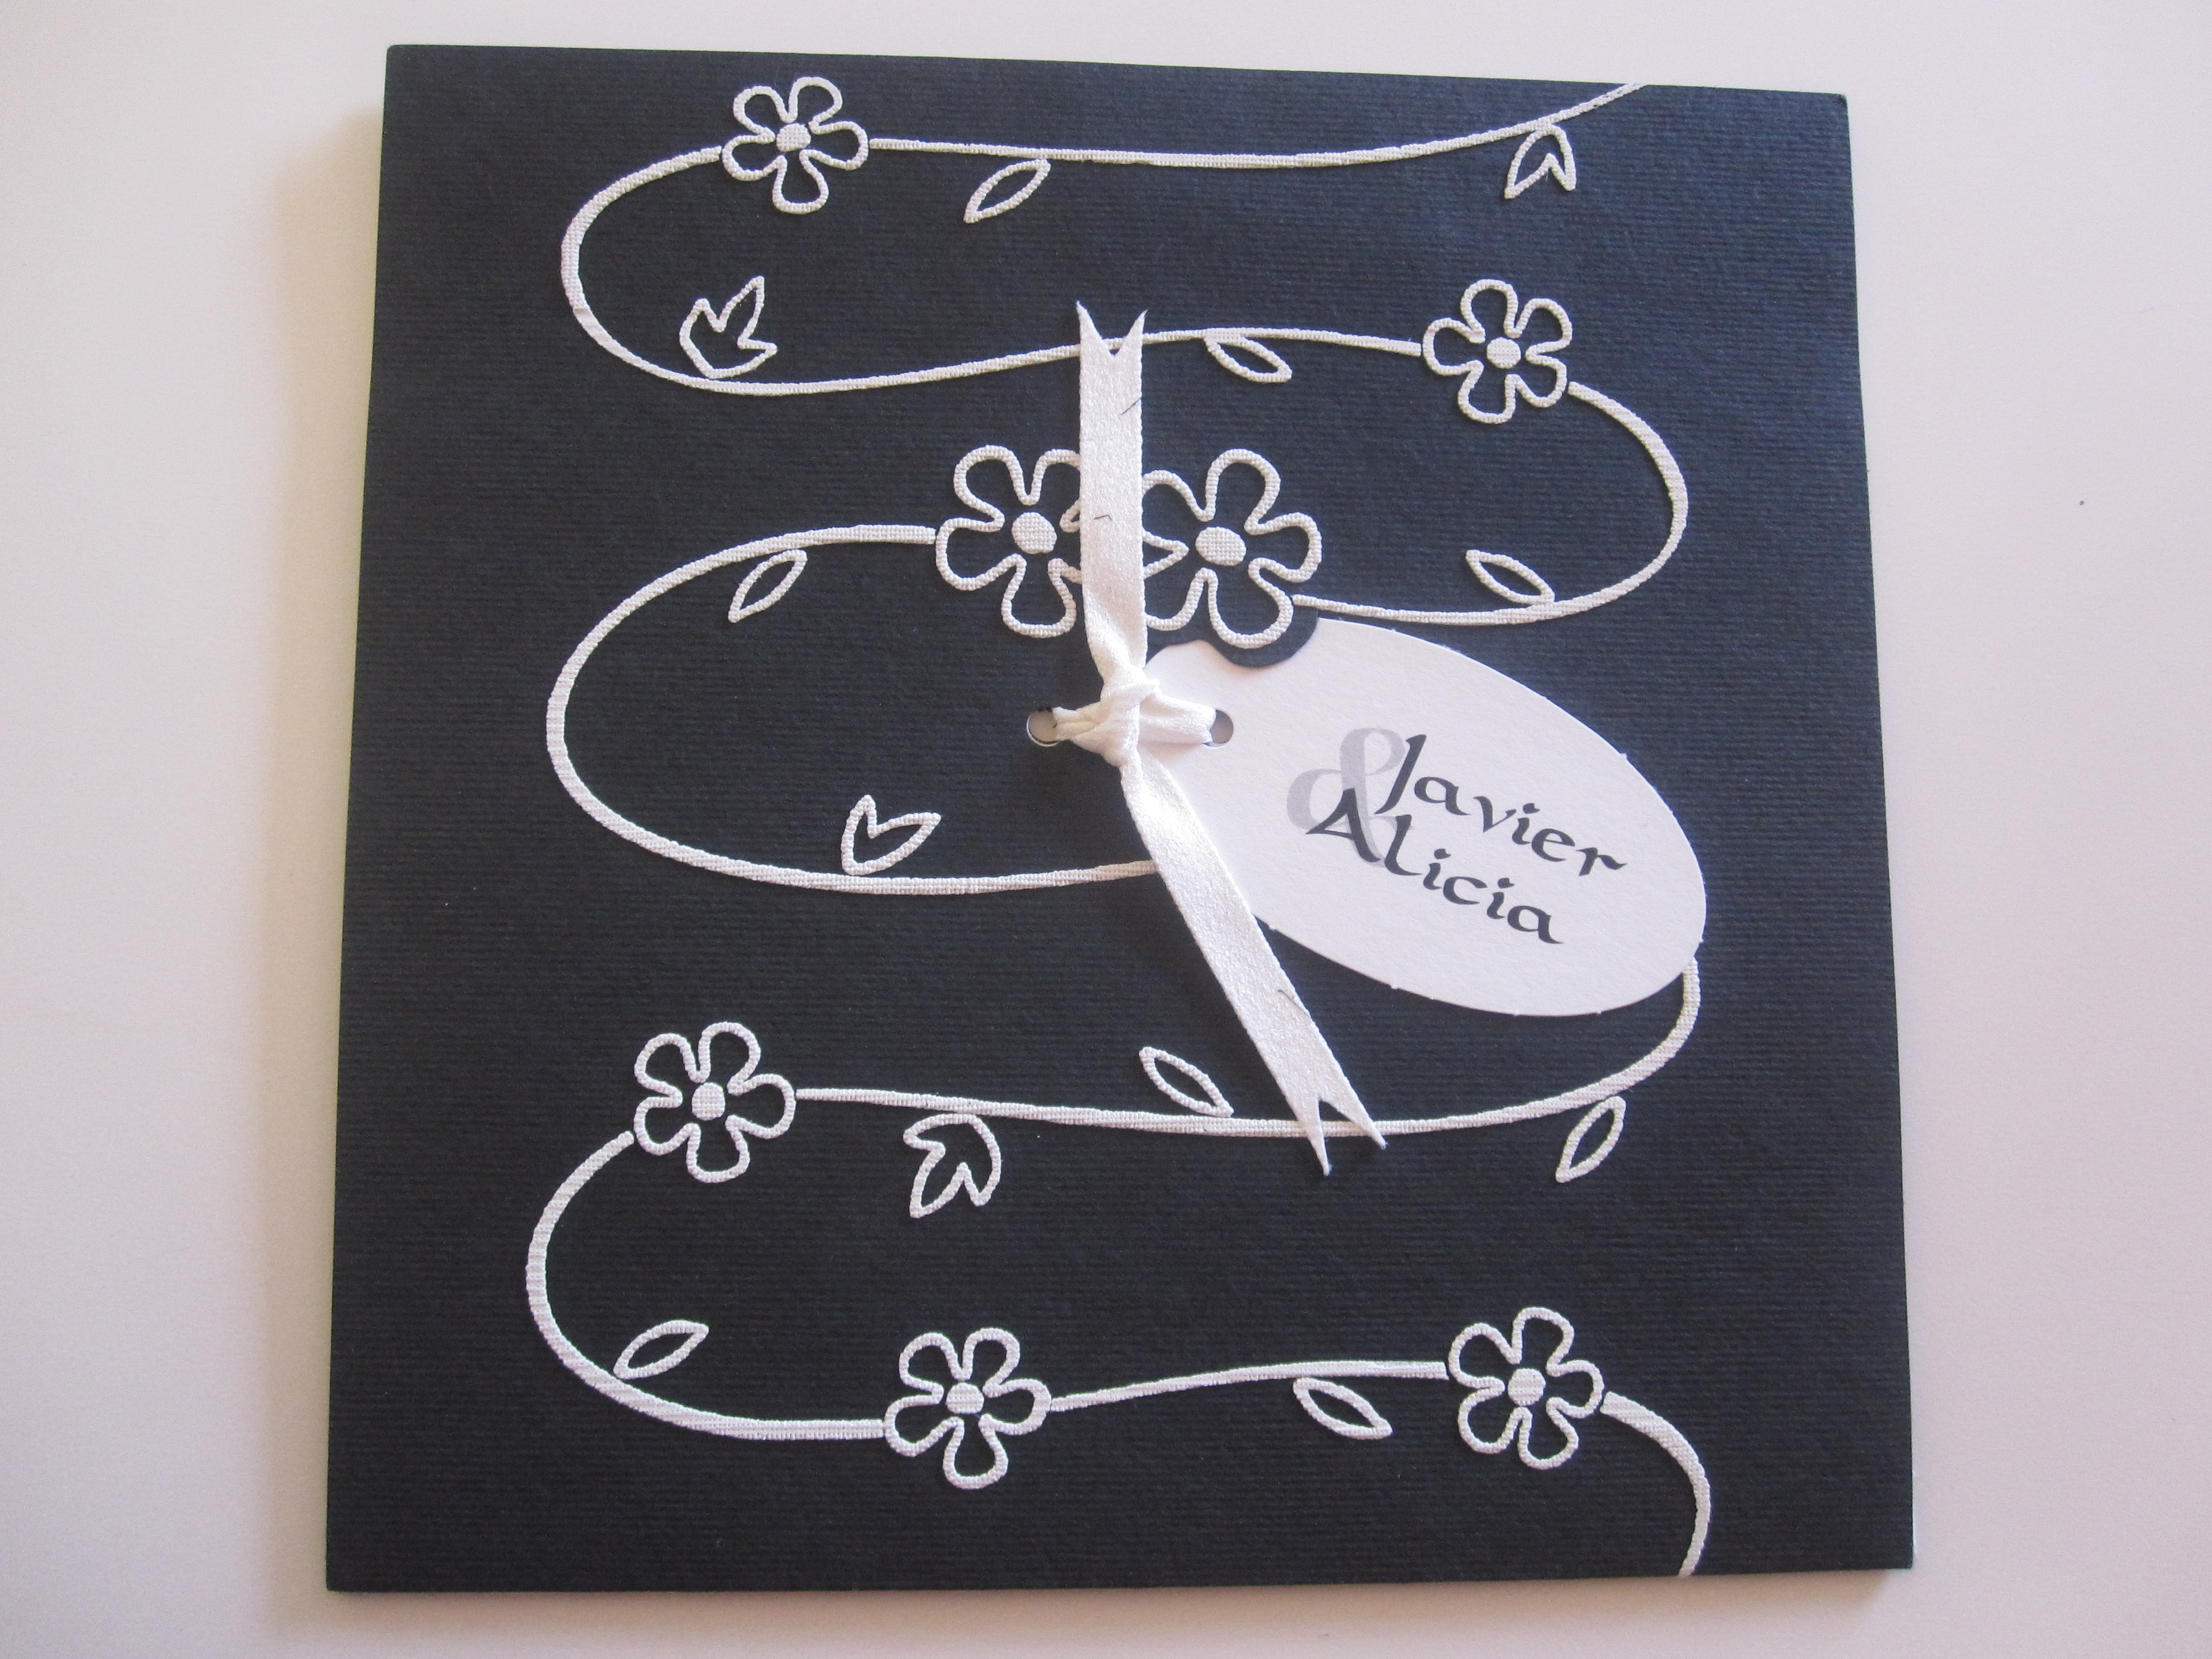 The couple is quite goth, so this was reflected in their black and white invitation.